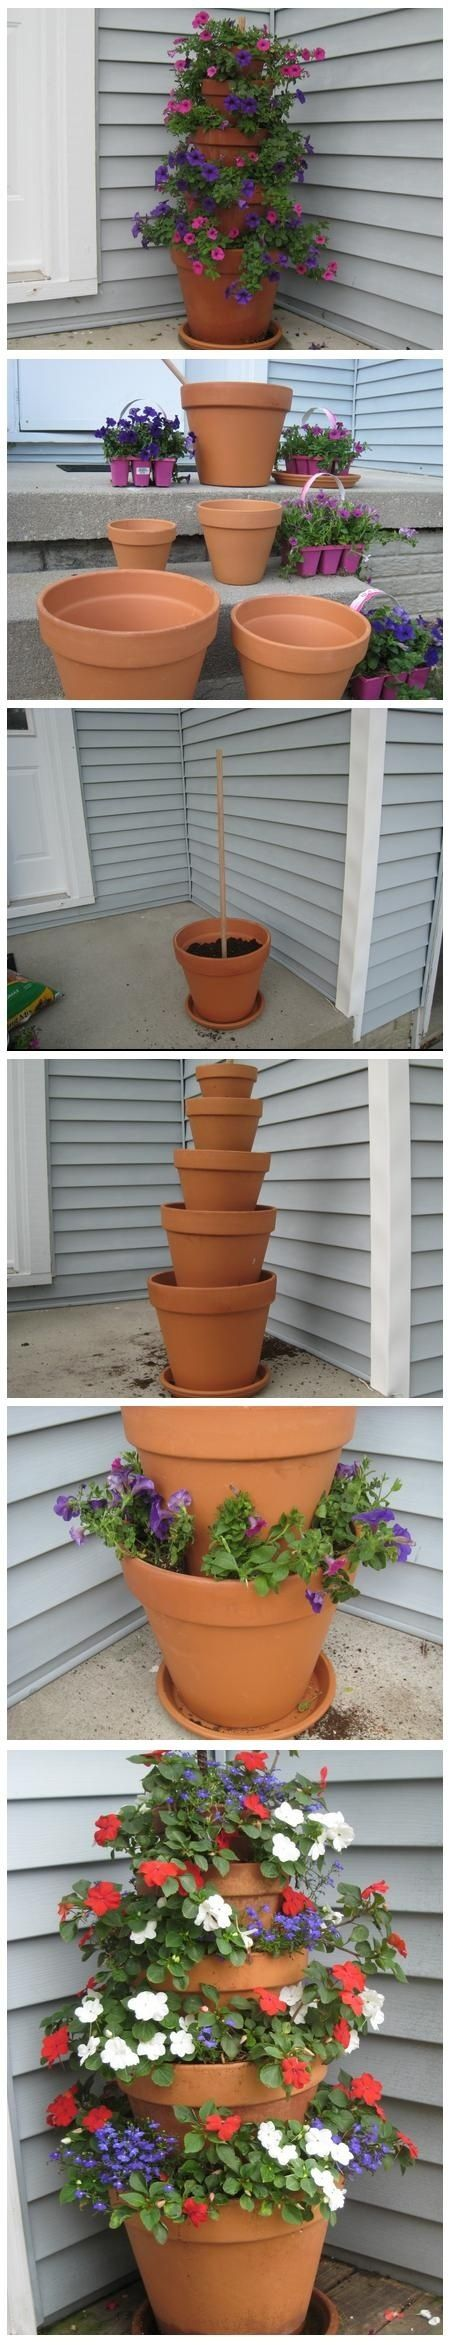 Gardening Ideas - Terra Cotta Pot Flower Tower with Annuals